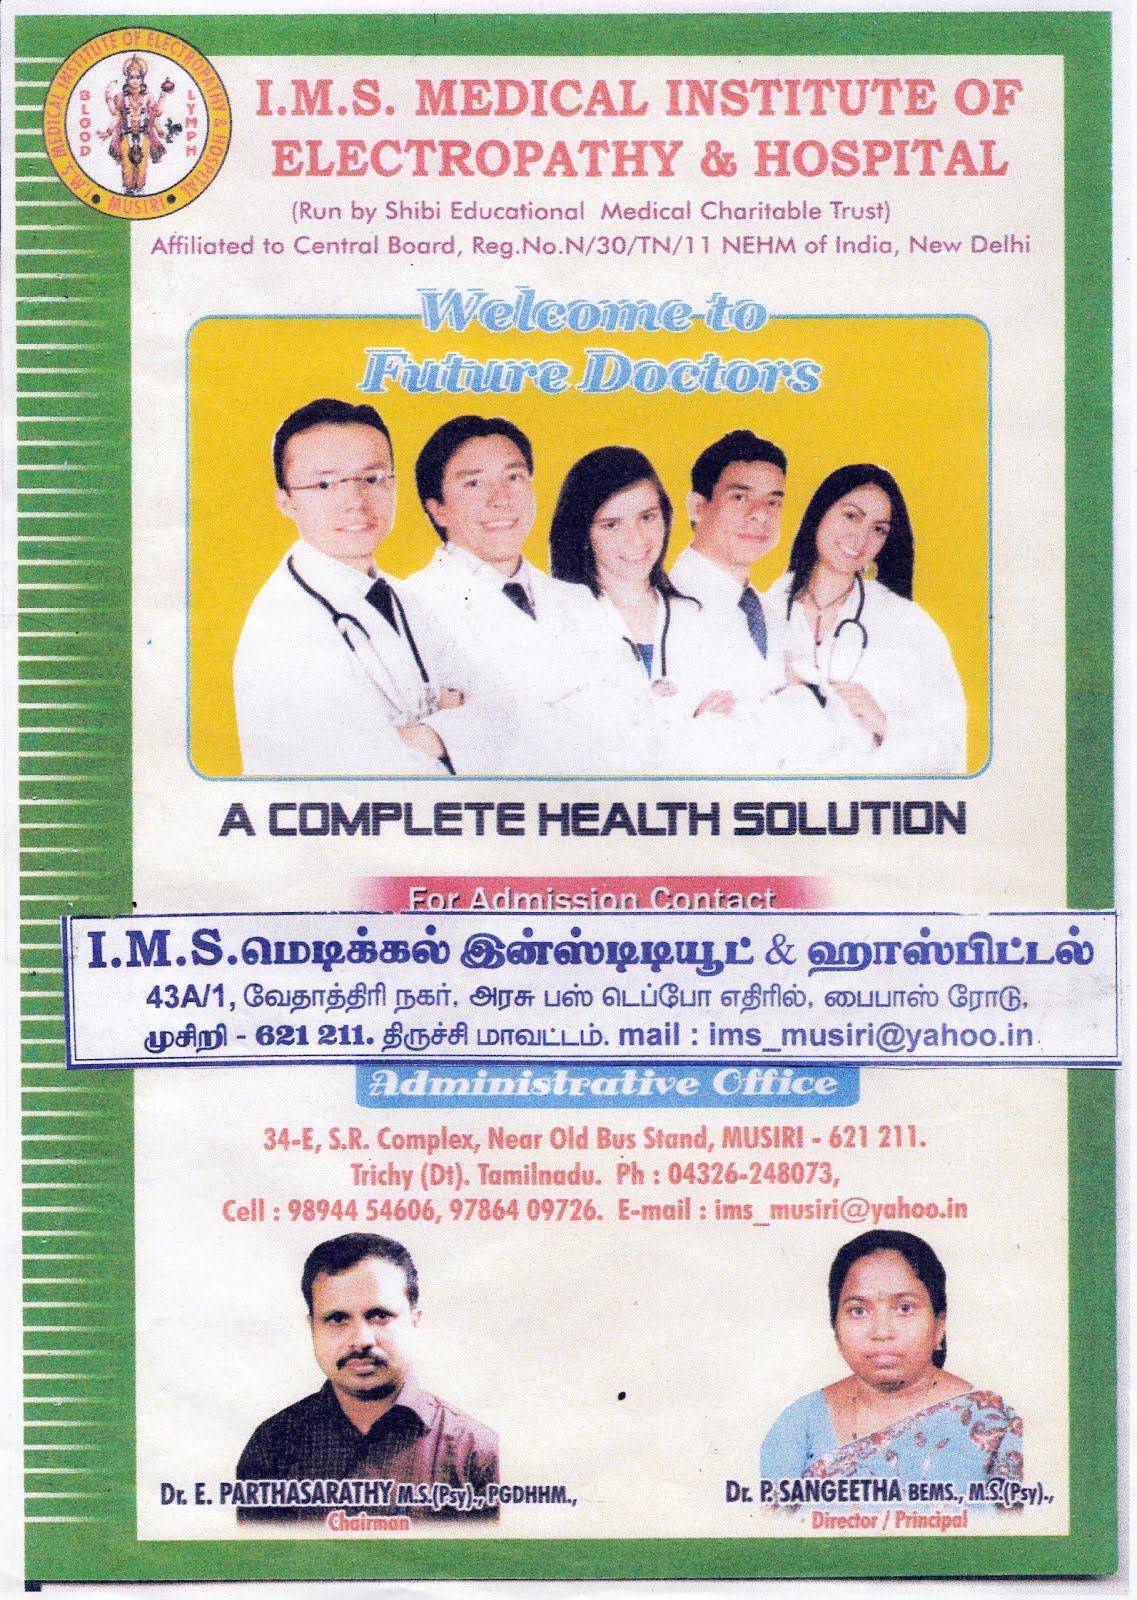 IMS Medical Institute